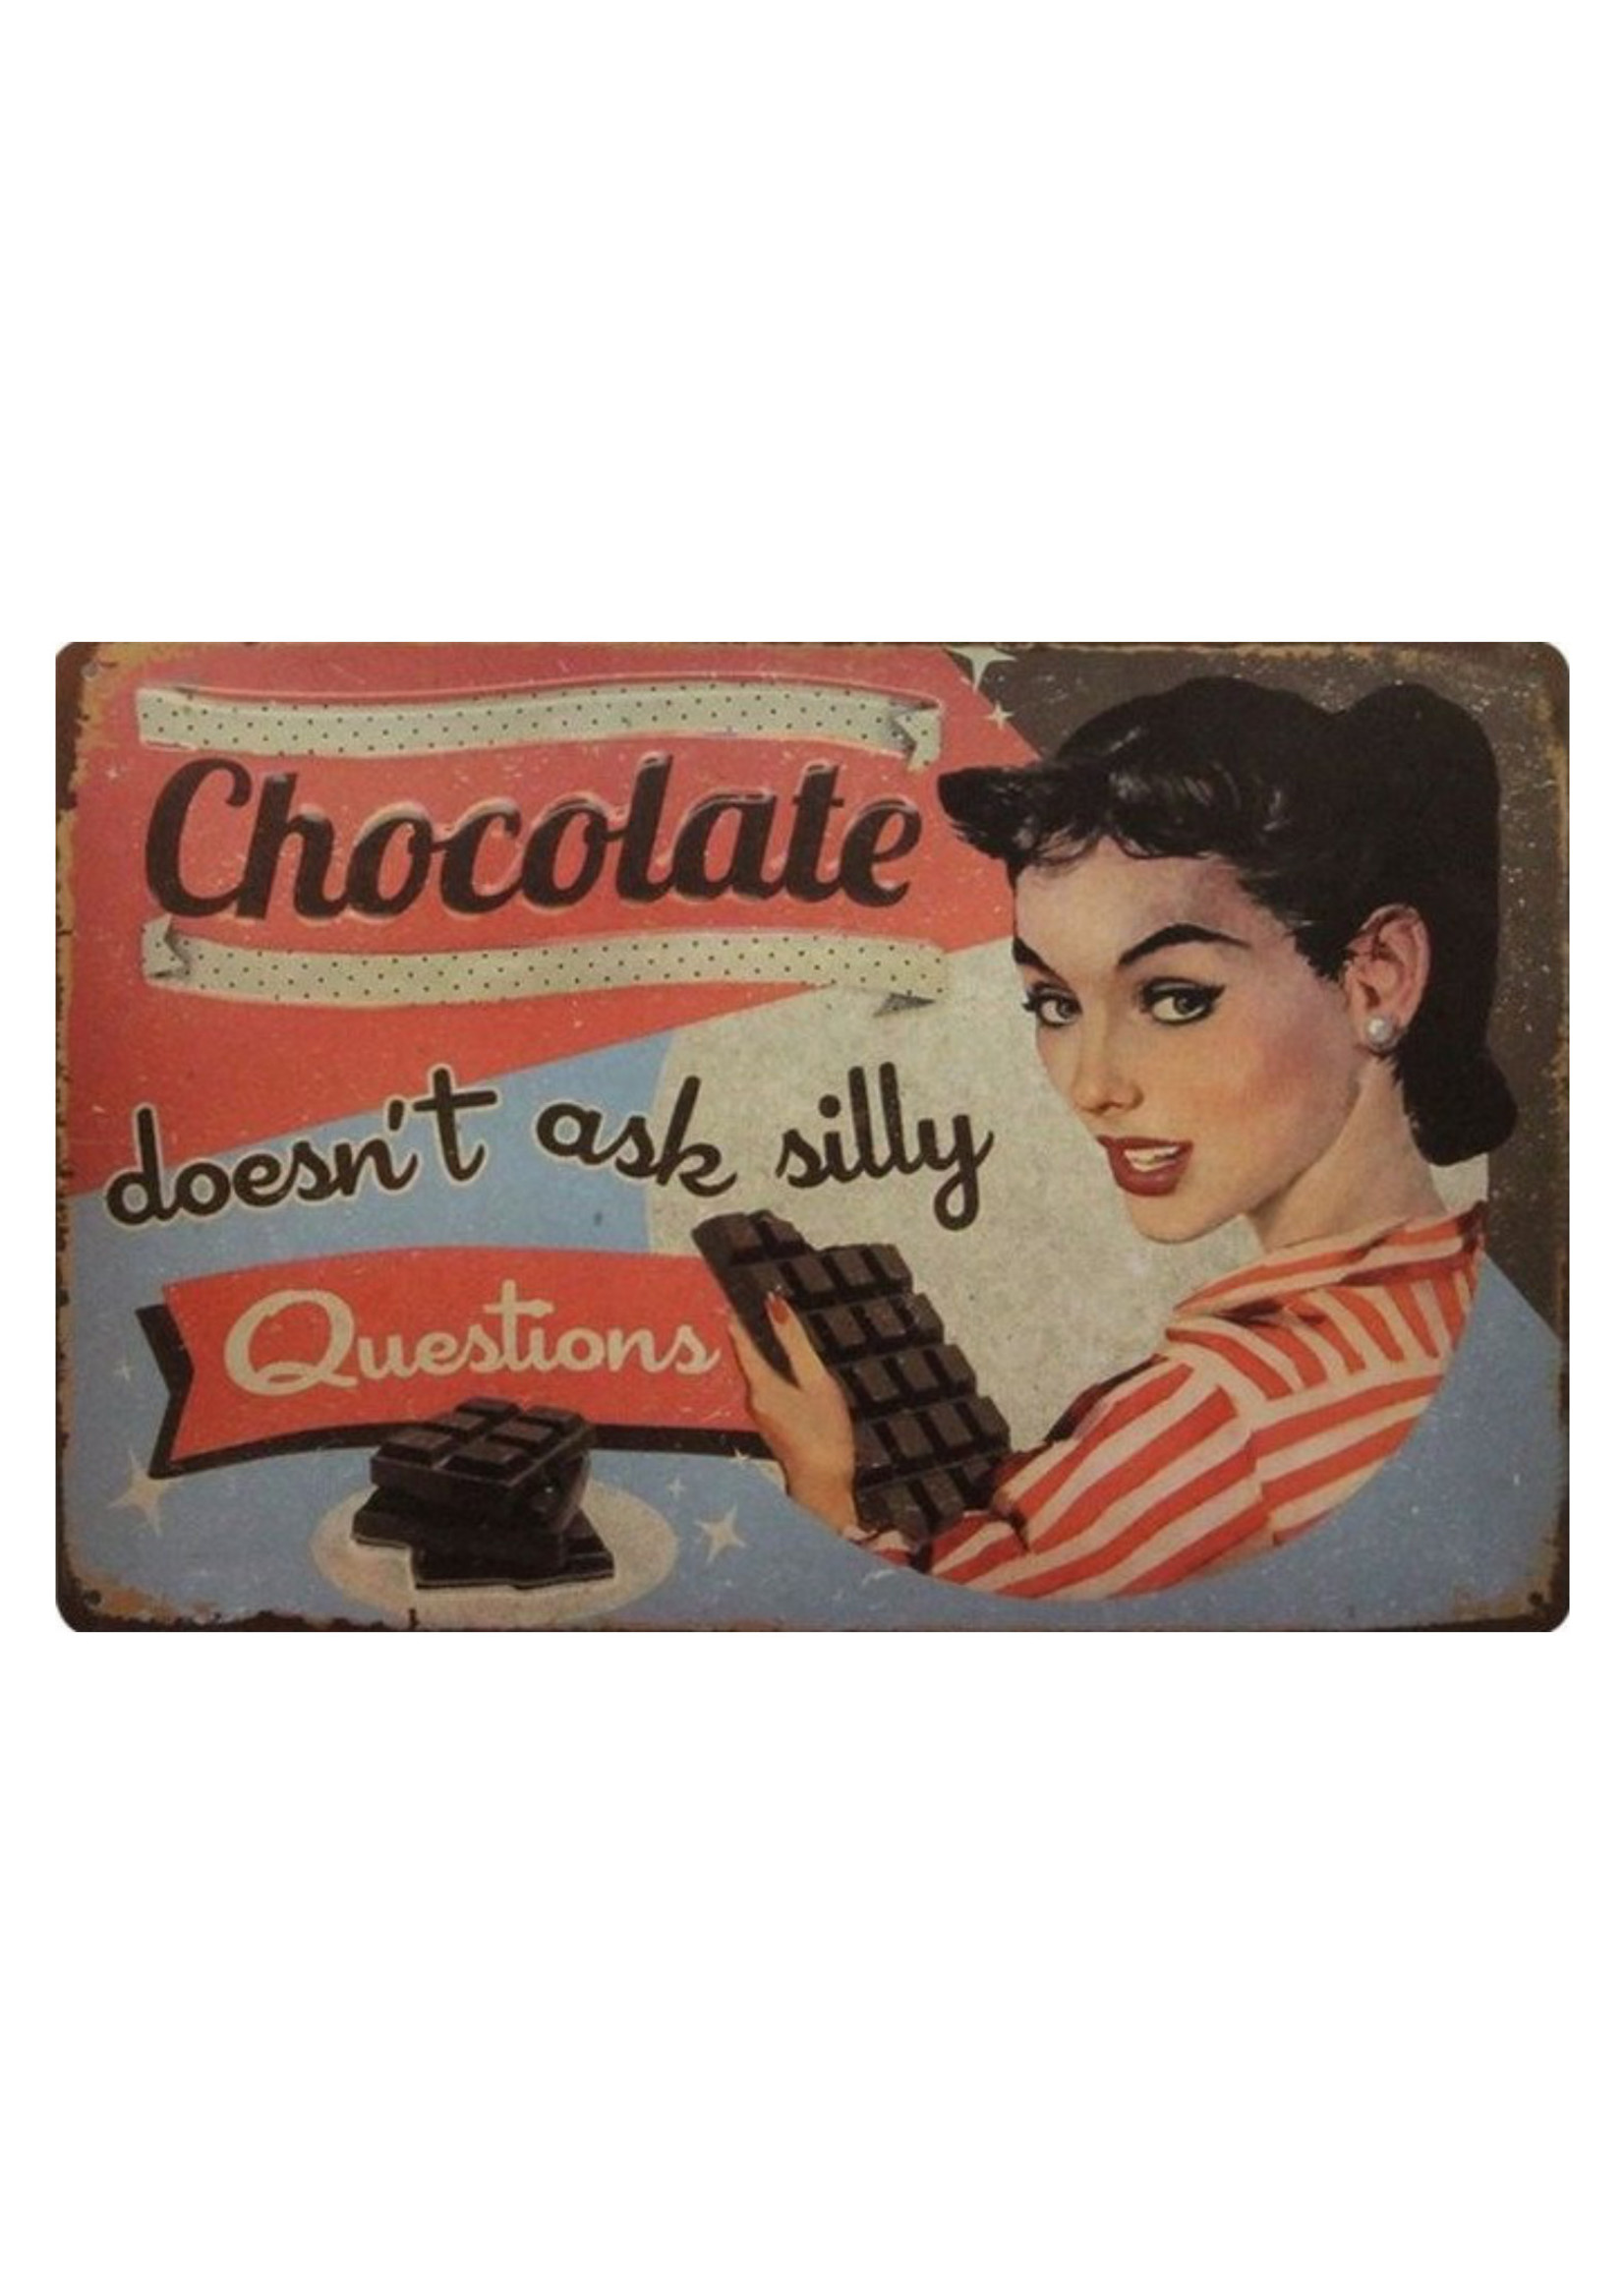 Metal wall sign 30 x 20 cm Chocolate doesn't ask silly quenstions